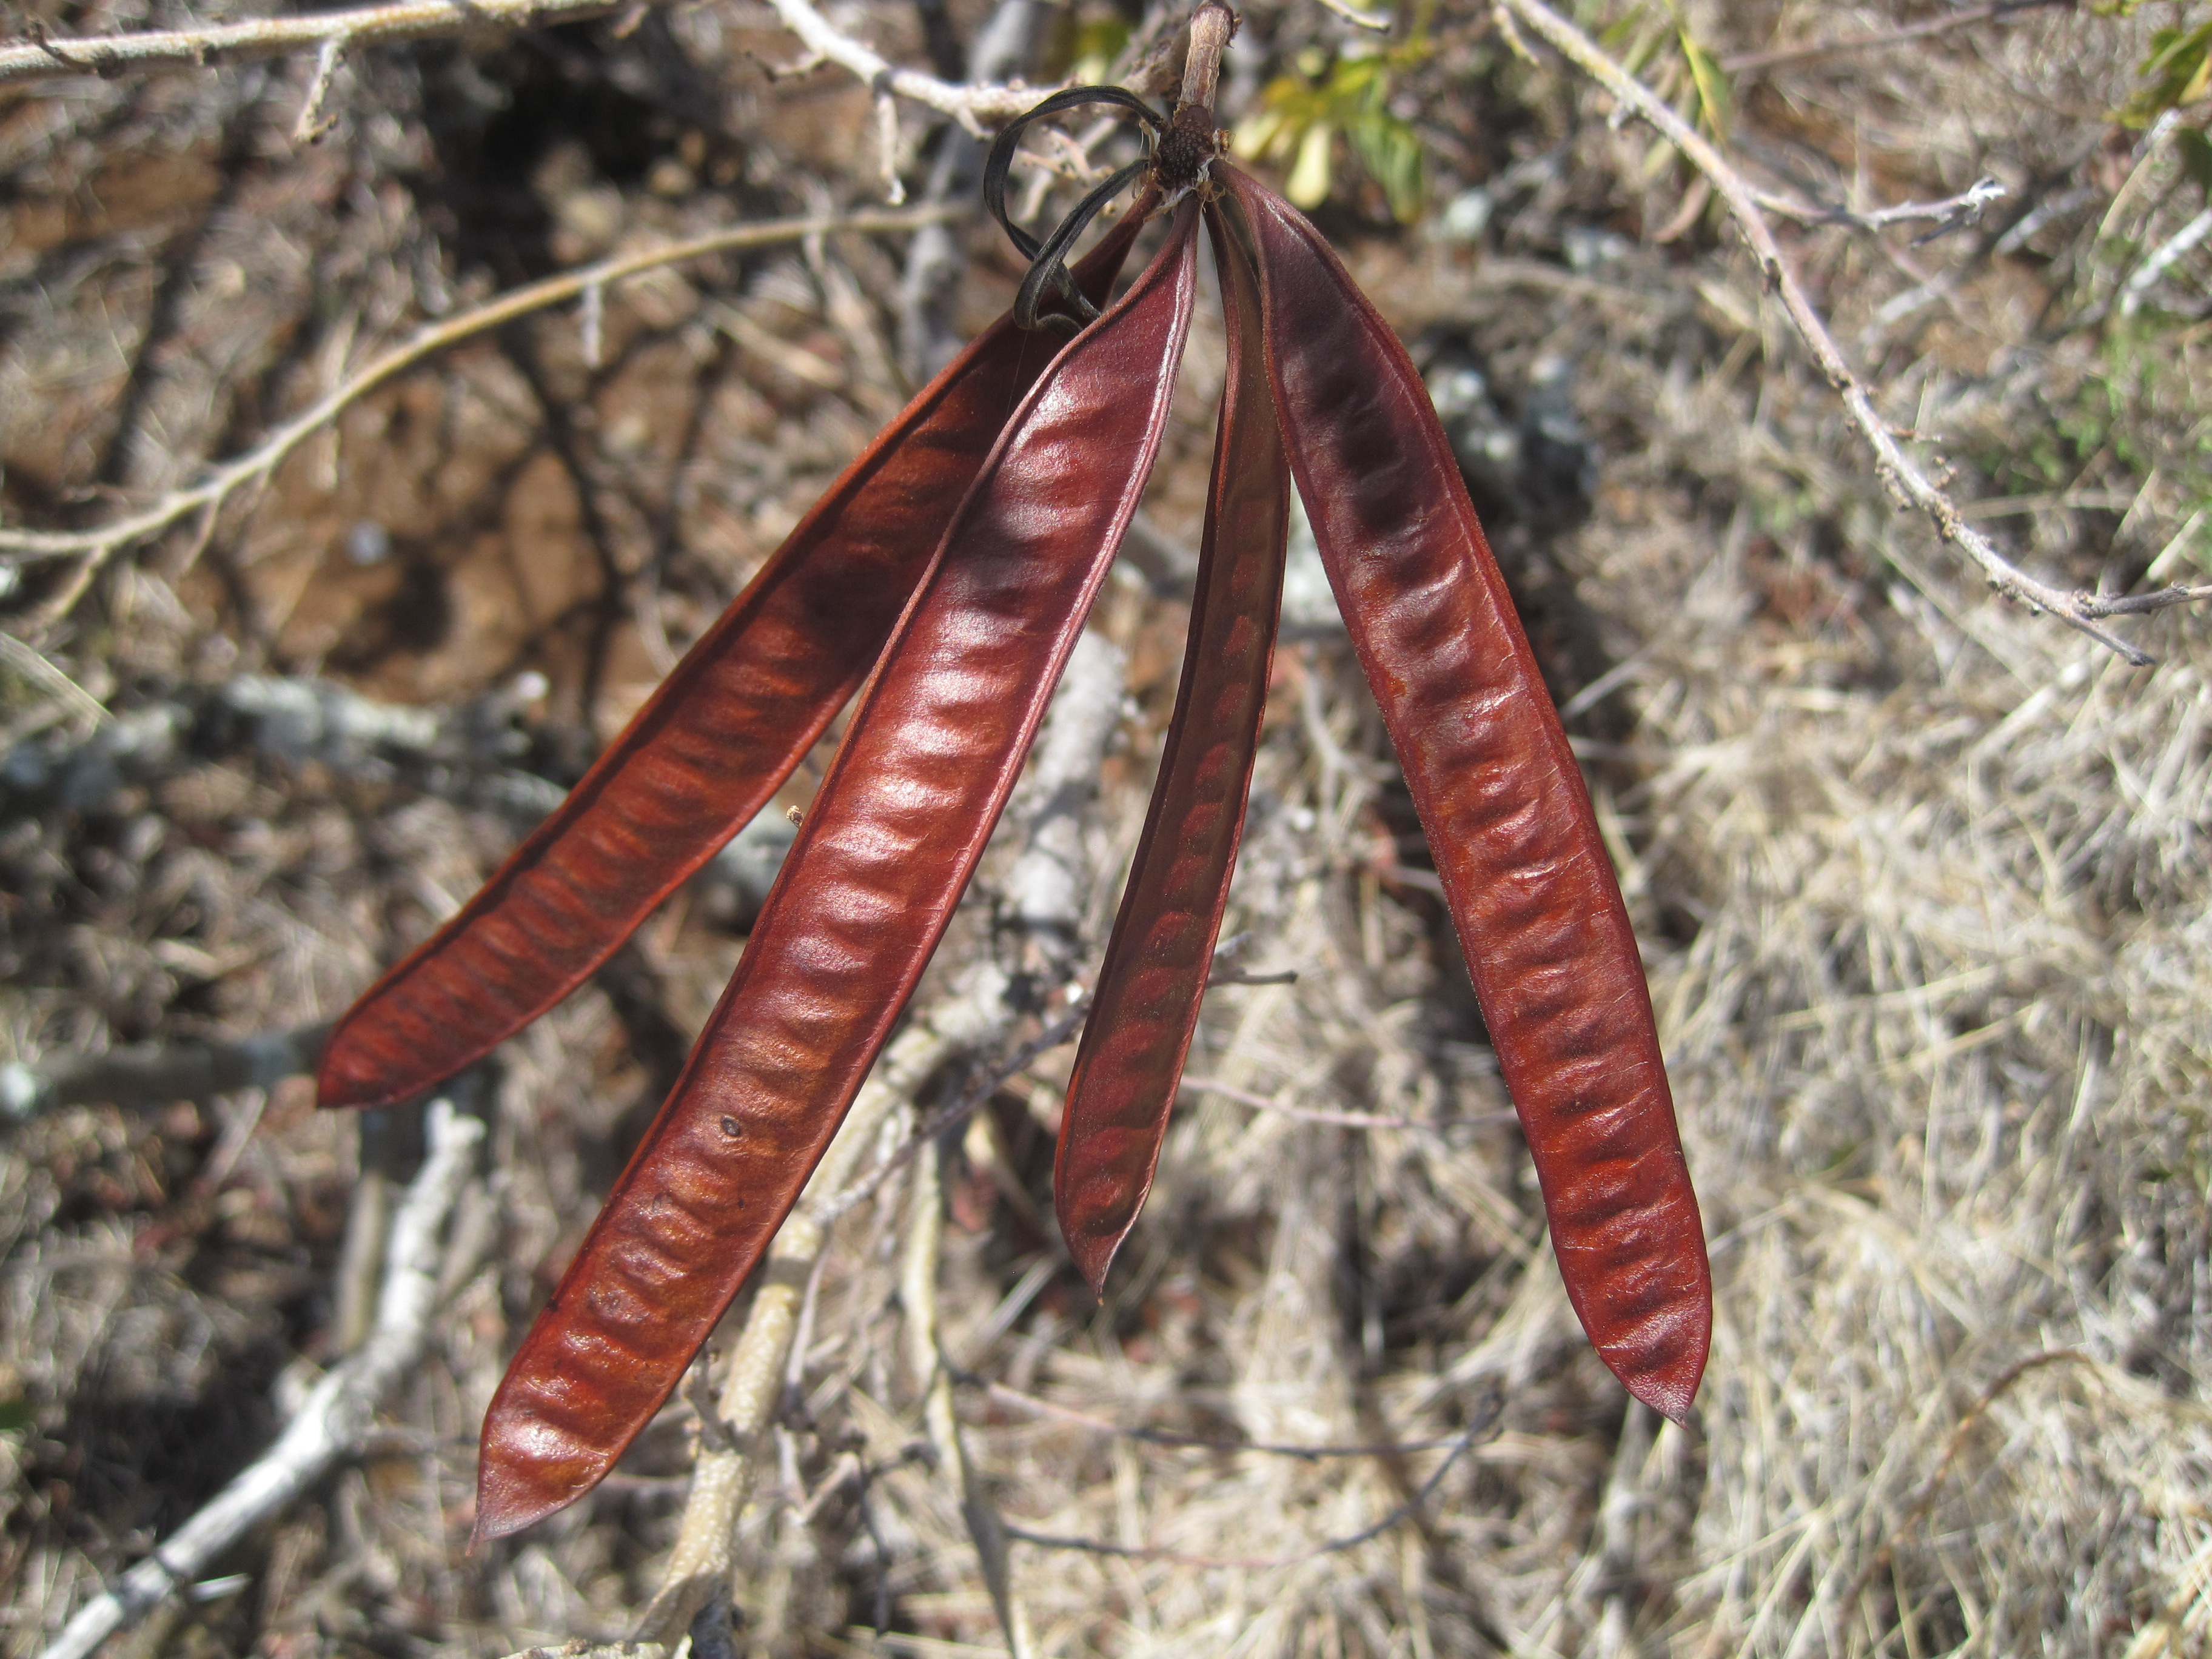 Seed pods of a widespread invasive species: hale koa